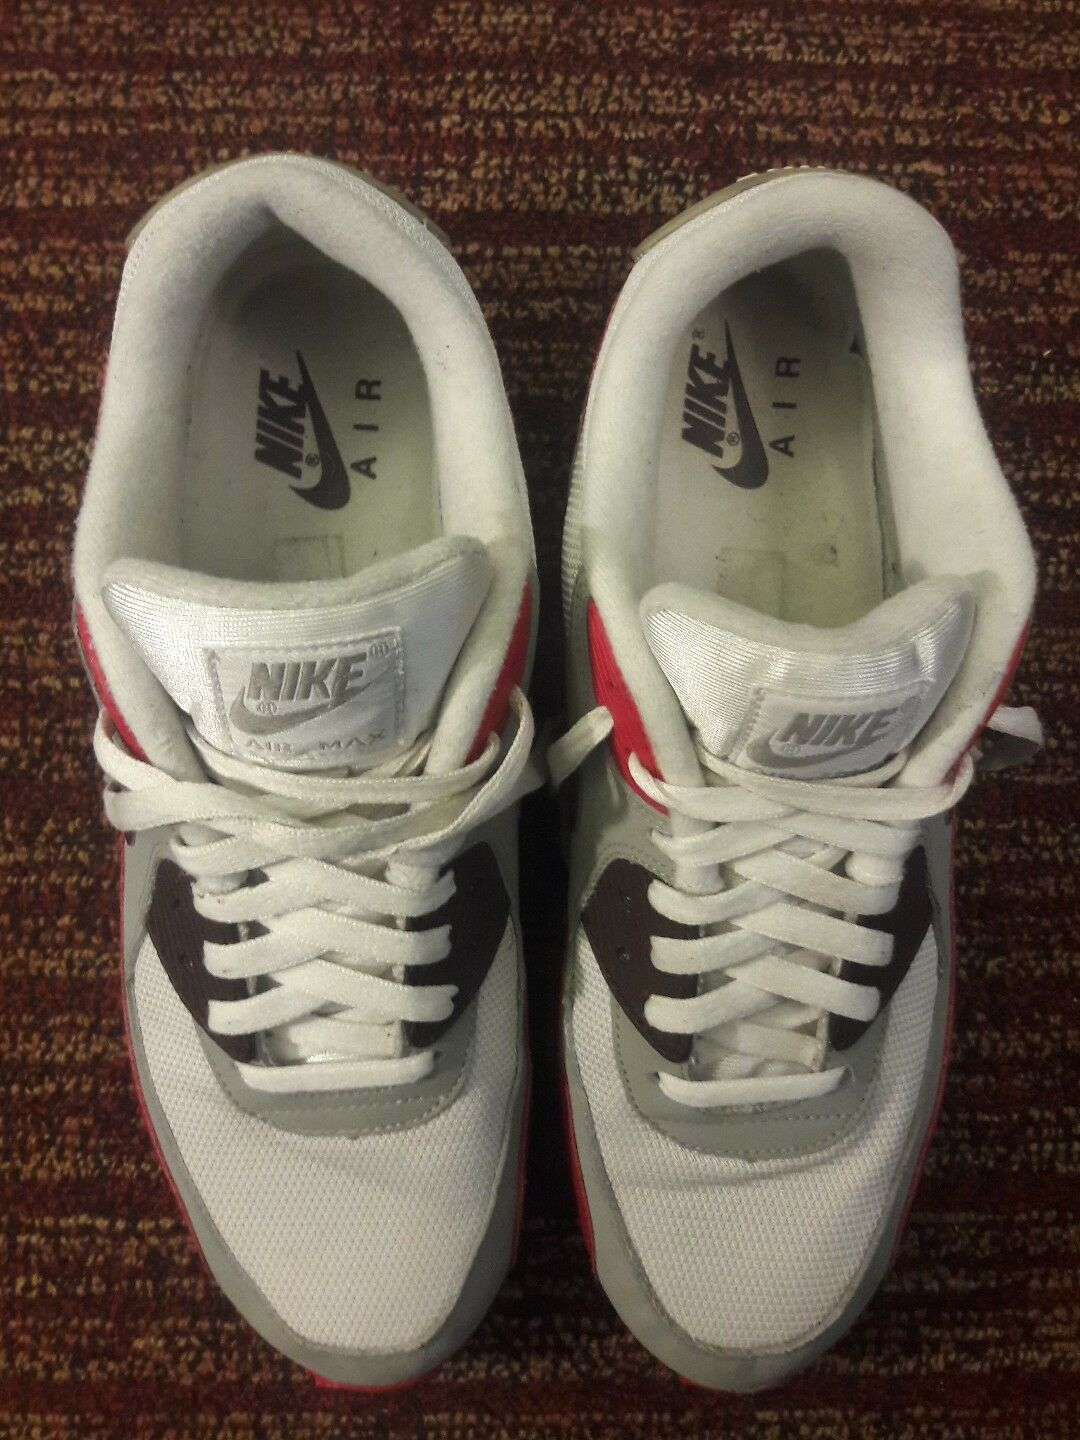 2011 Nike Air Max 90 White DEEP BURGUNDY Versity RED  OG Infare 325018-603 11.5 Cheap and beautiful fashion